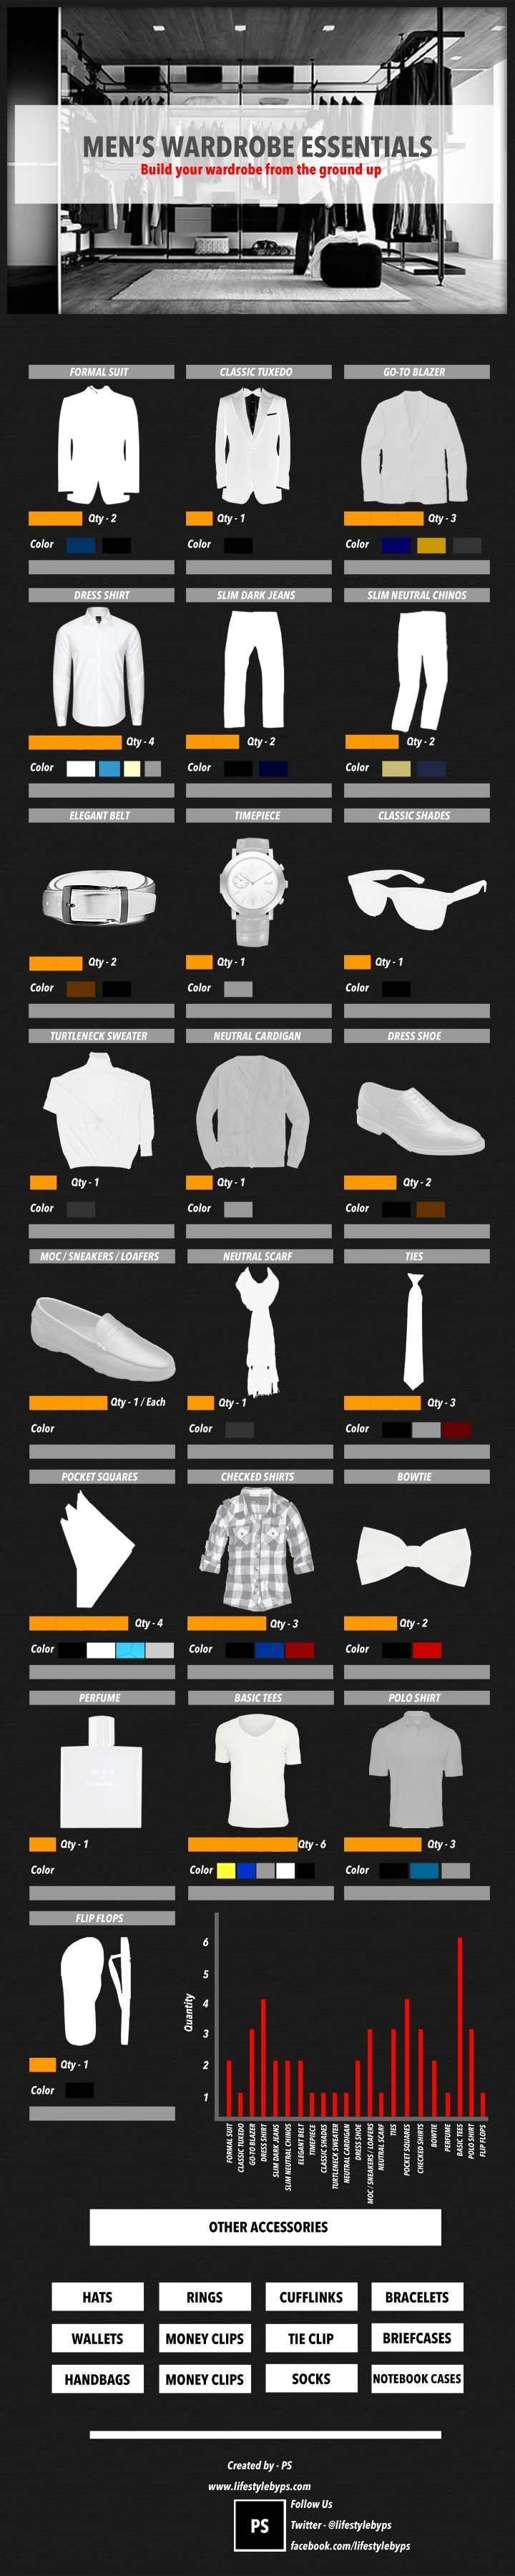 The infographic below showcases almost all of the essential items that can serve as the basis for a classic wardrobe. We recommend buying quality, Well-made clothing looks better every time you wear.